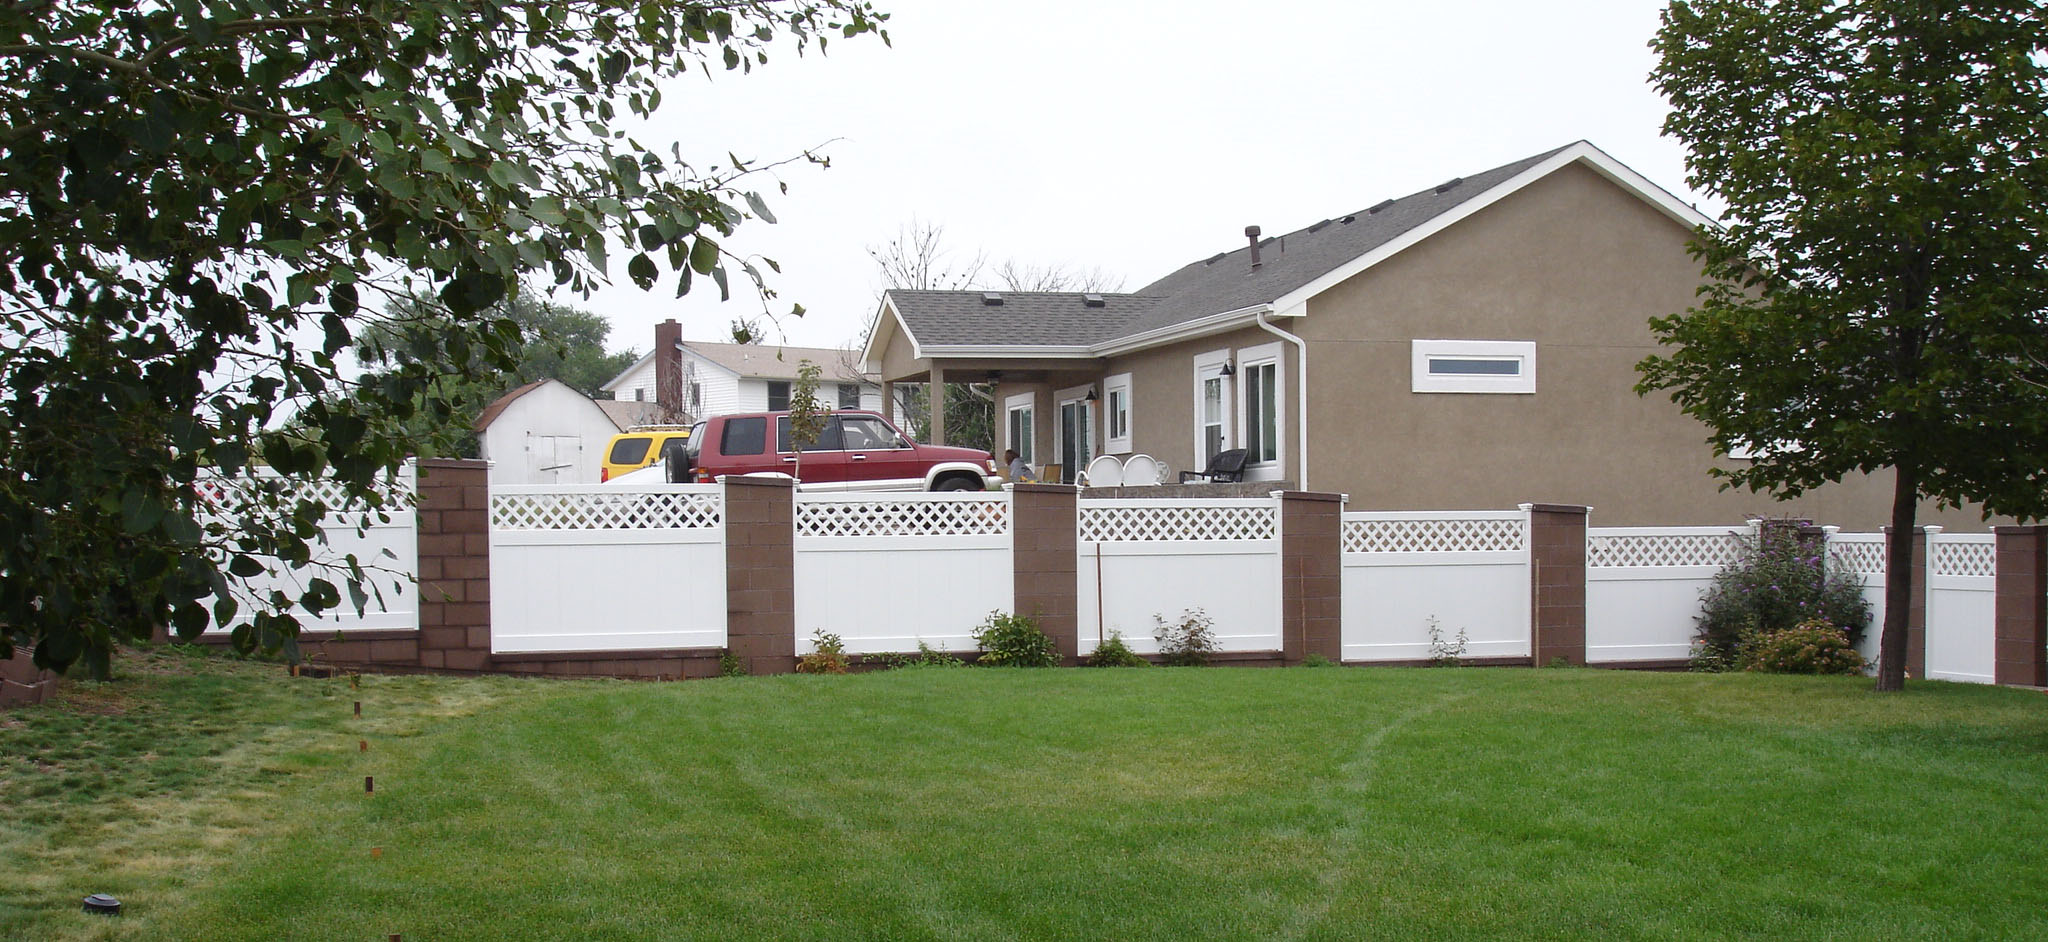 vinyl privacy fence with brick